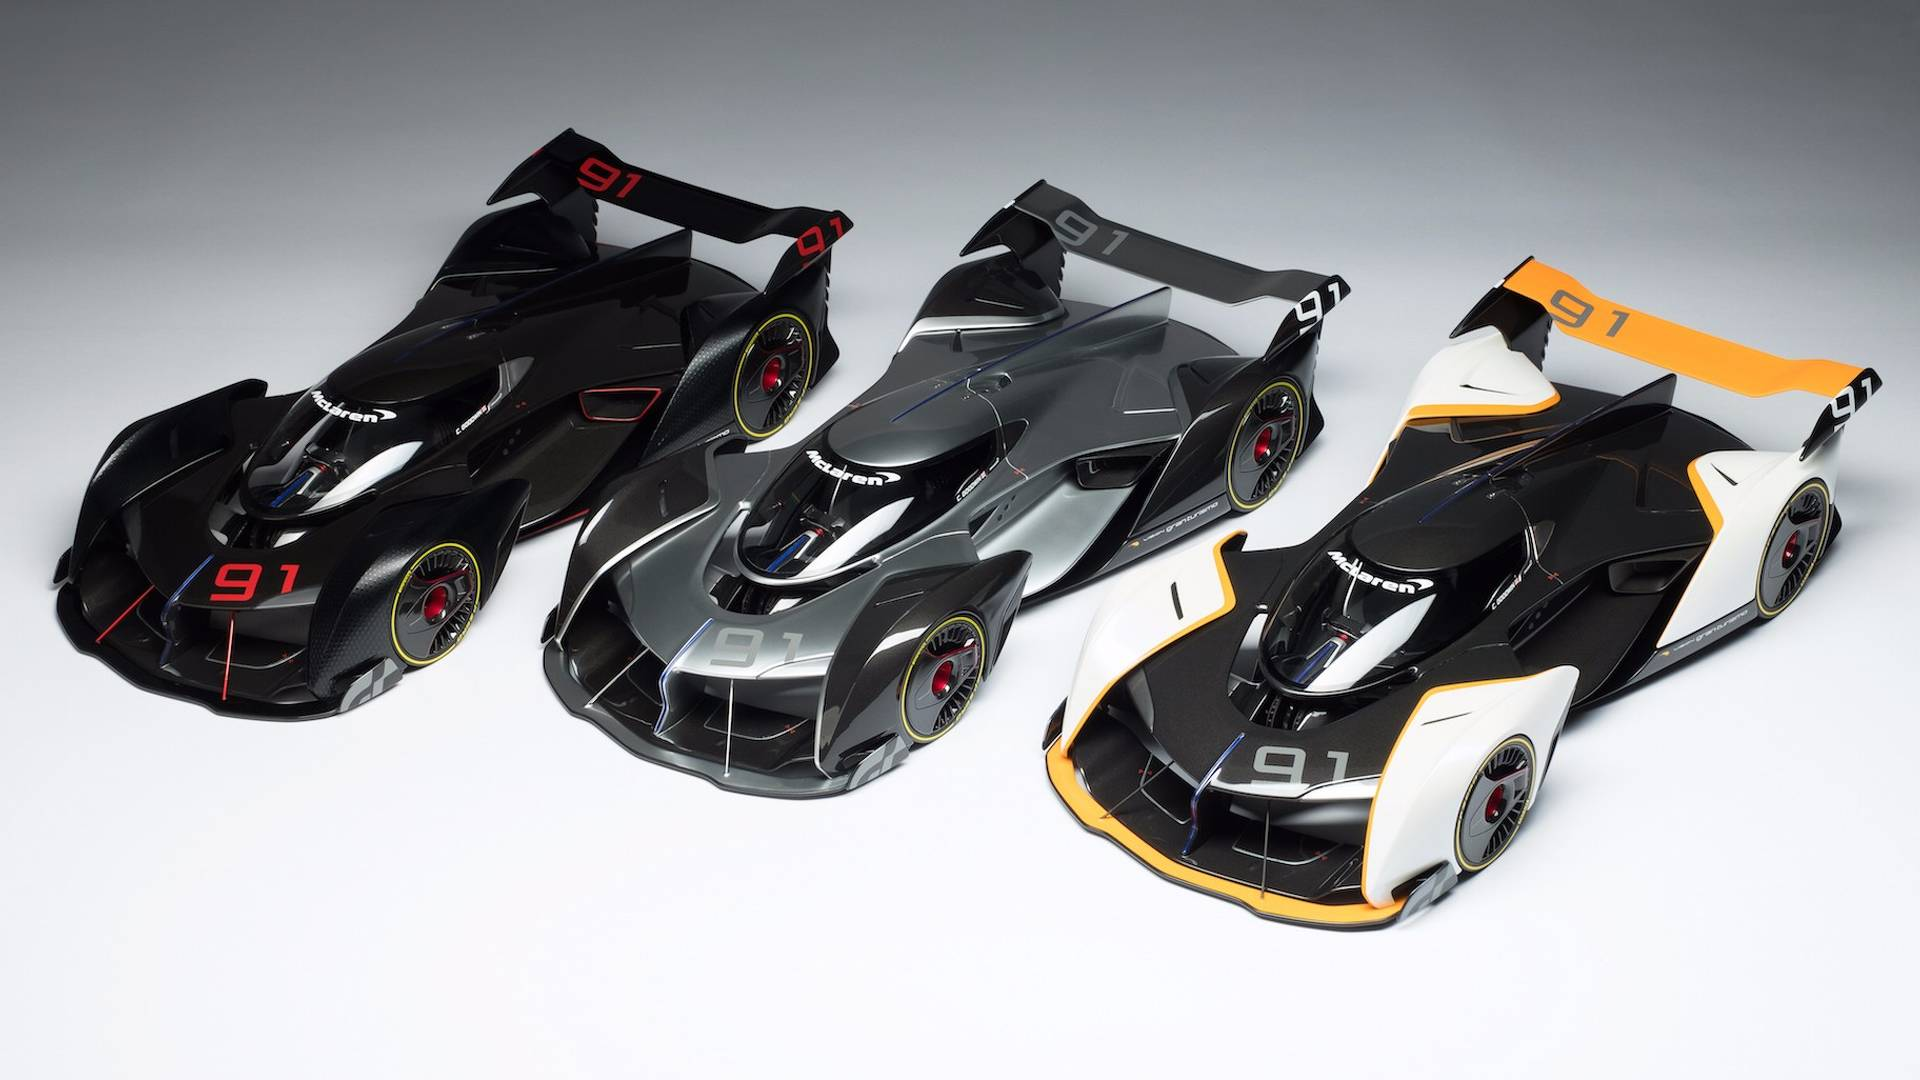 mclaren-ultimate-vision-gt-scale-model (9)